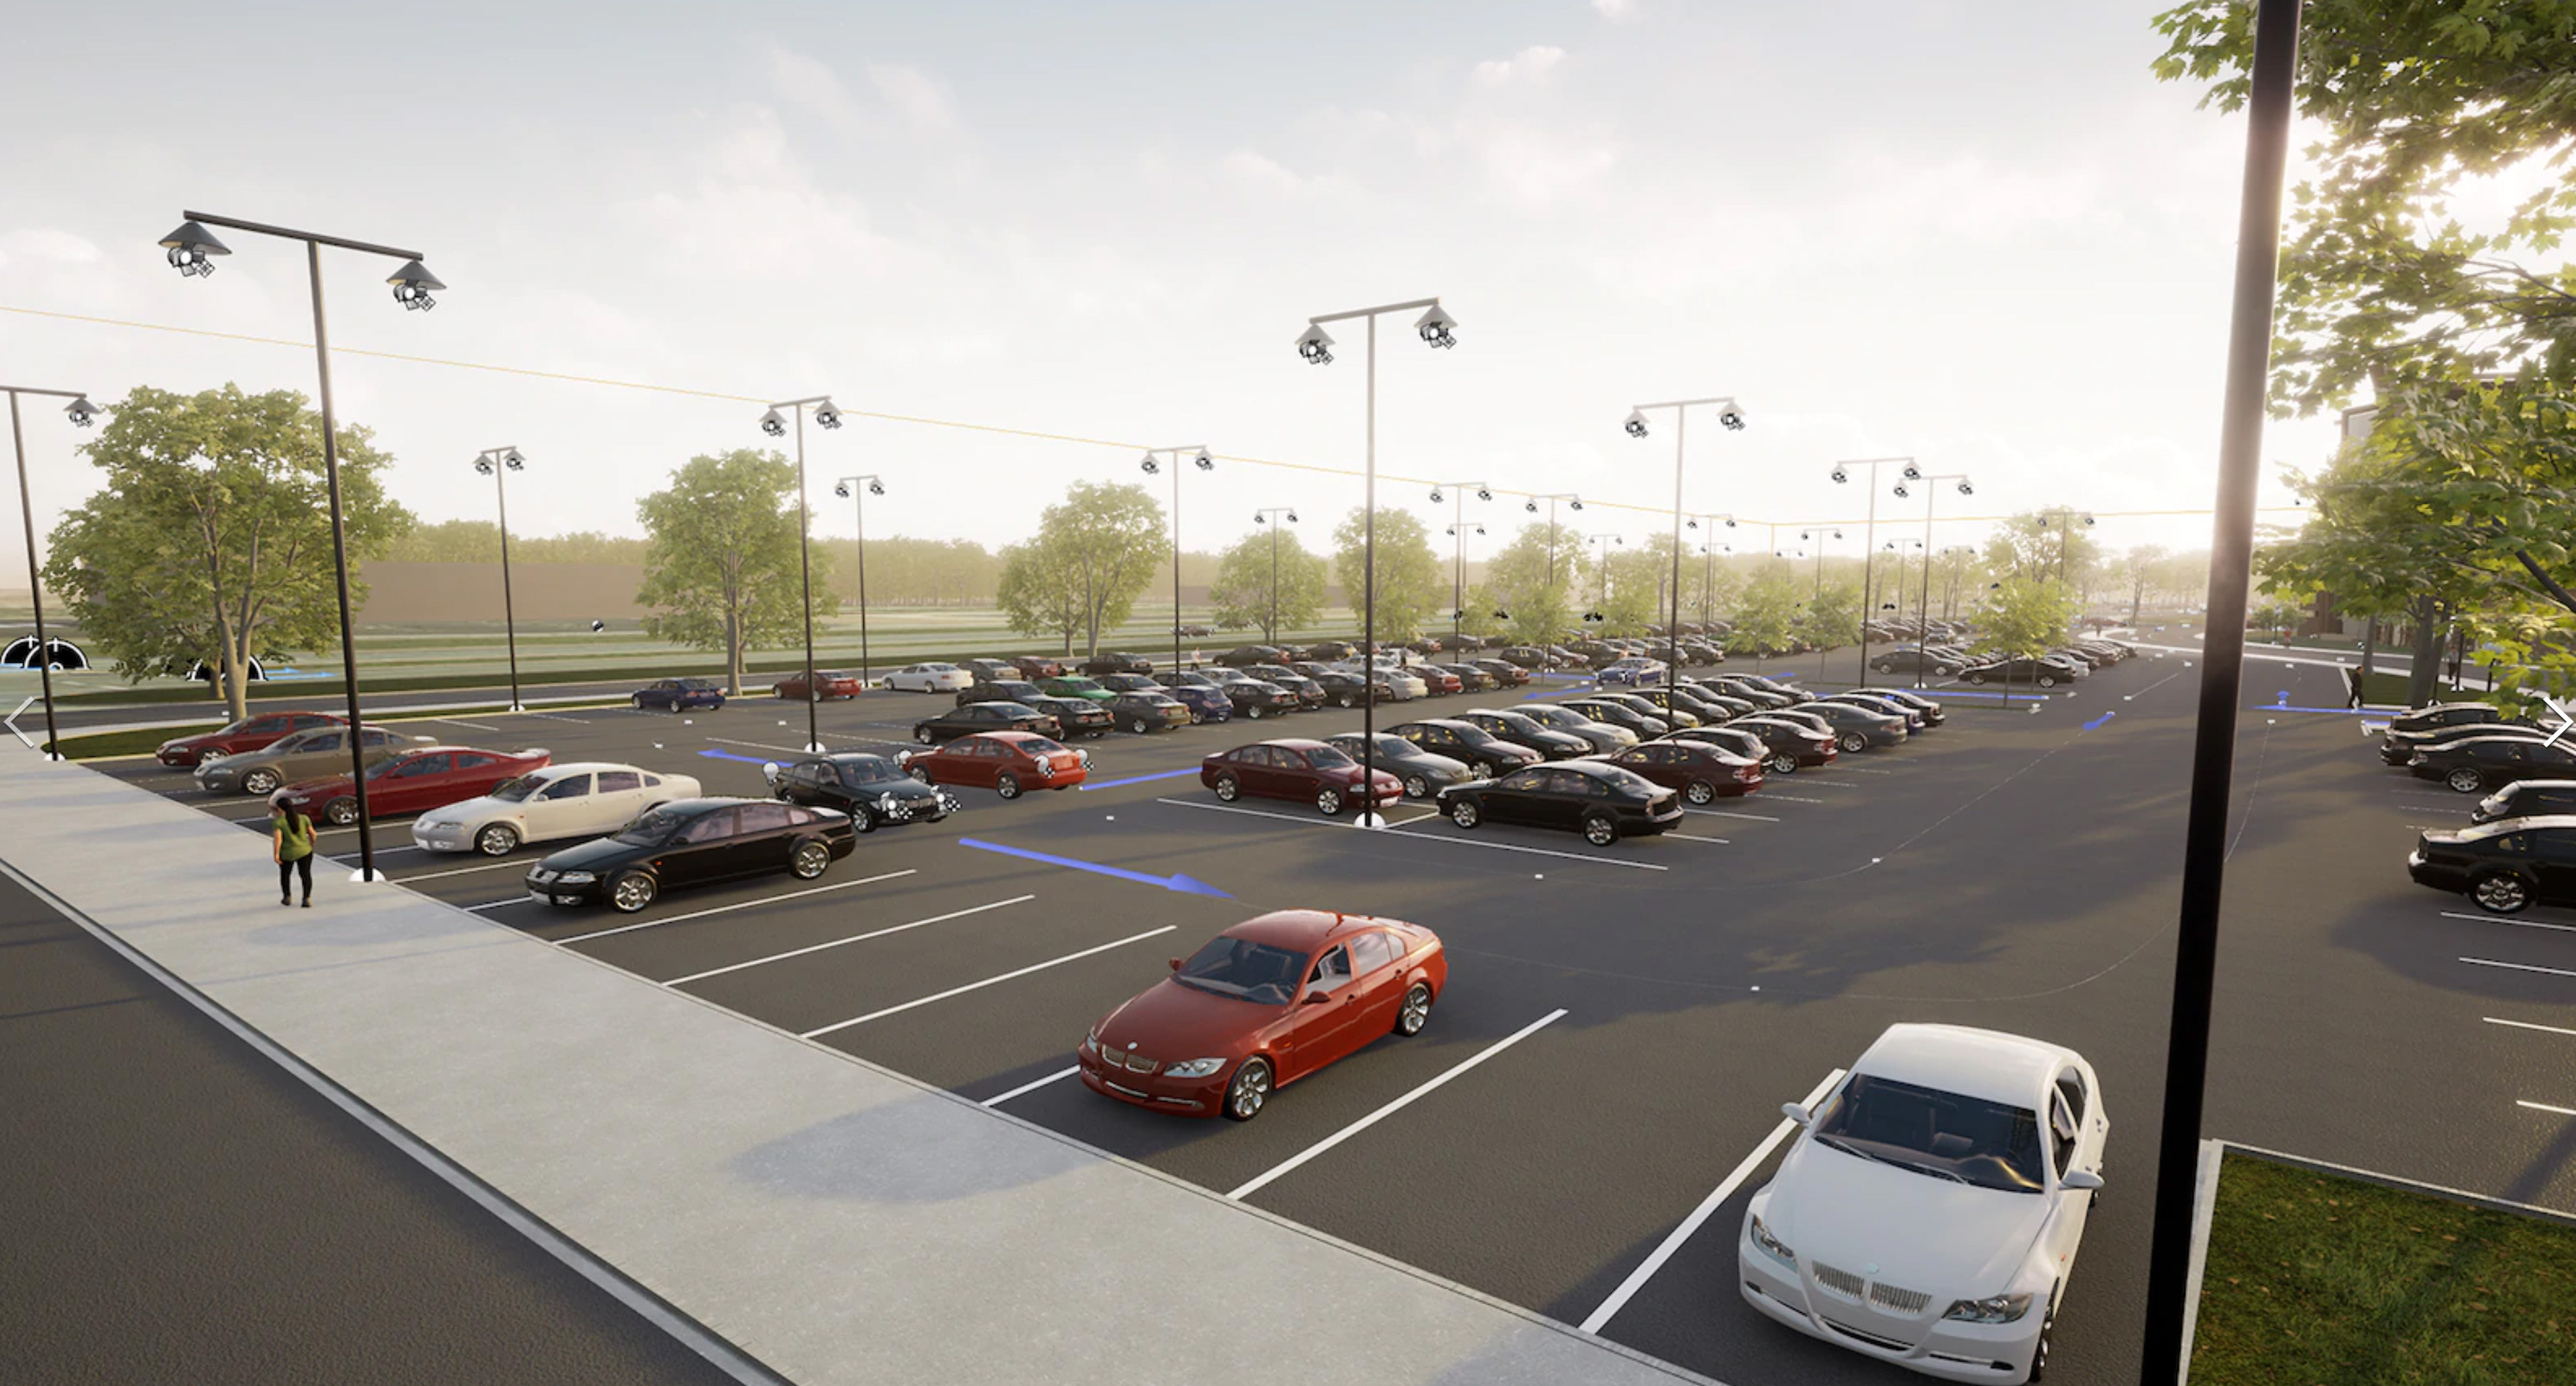 Arch Vis AI Traffic System I've developed for the Unreal Engine Marketplace. https://www.unrealengine.com/marketplace/en-US/product/arch-vis-ai-traffic-system